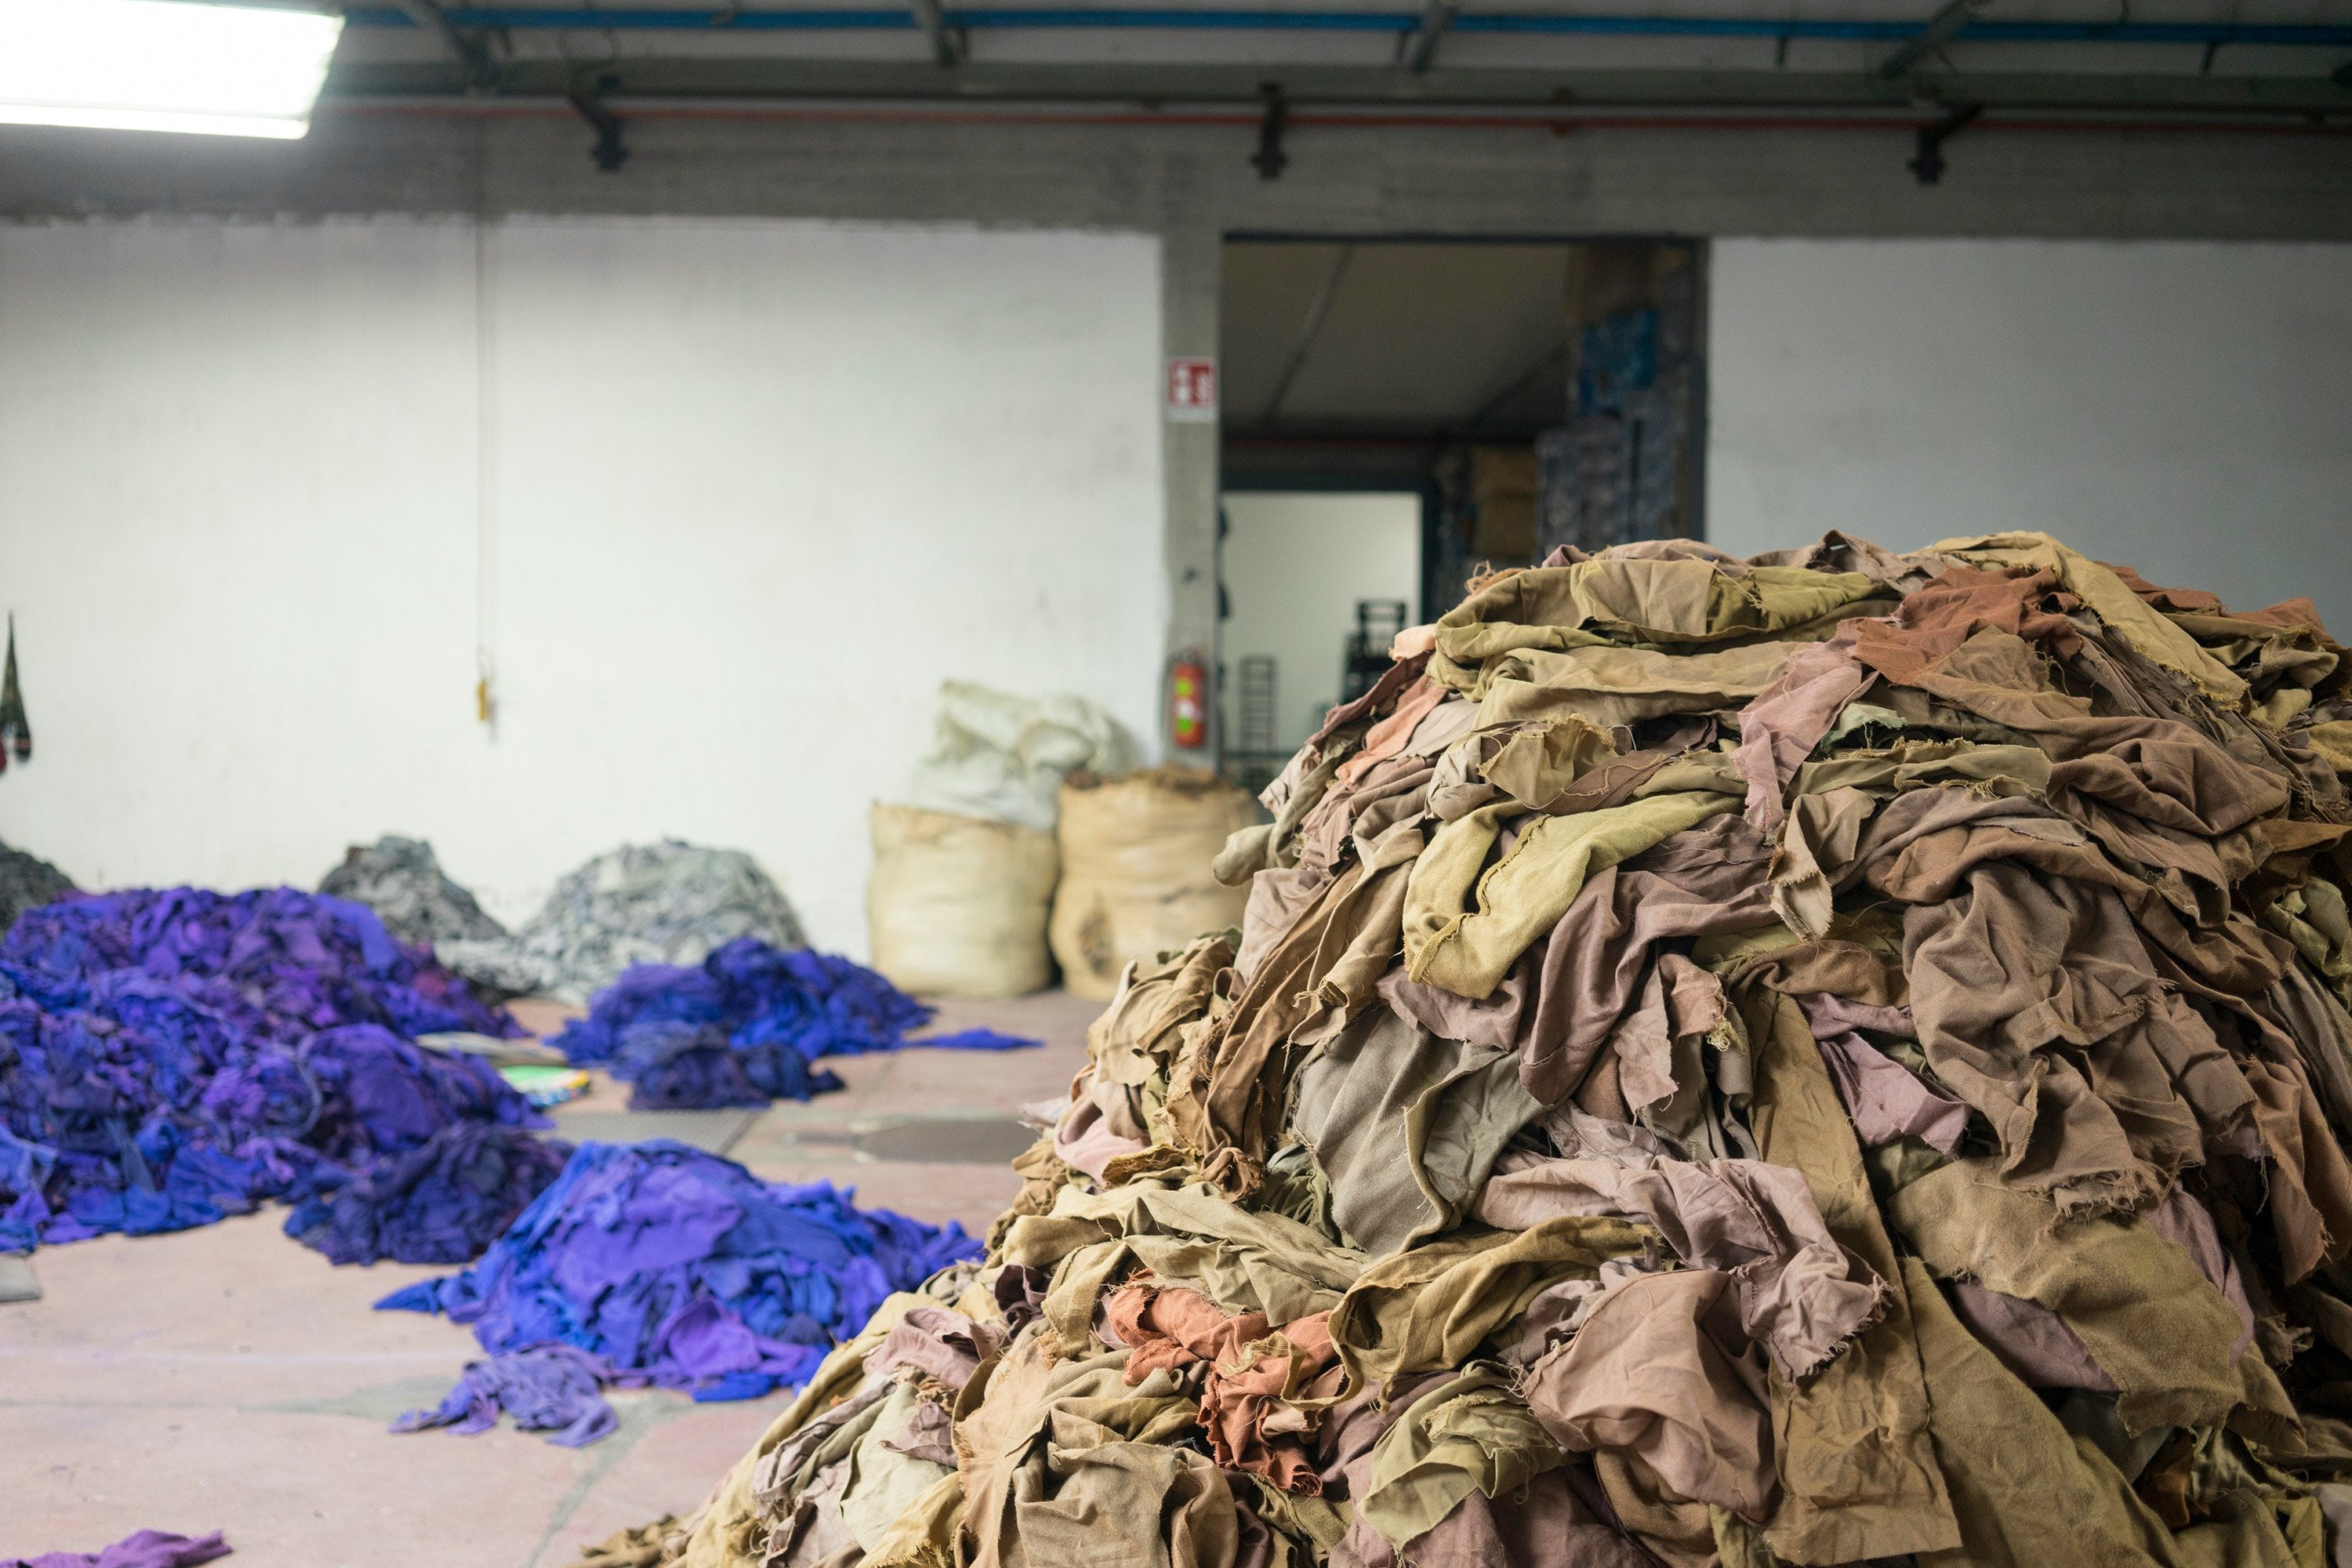 Used woollen garments shredded and sorted into colour piles, ready for recycling